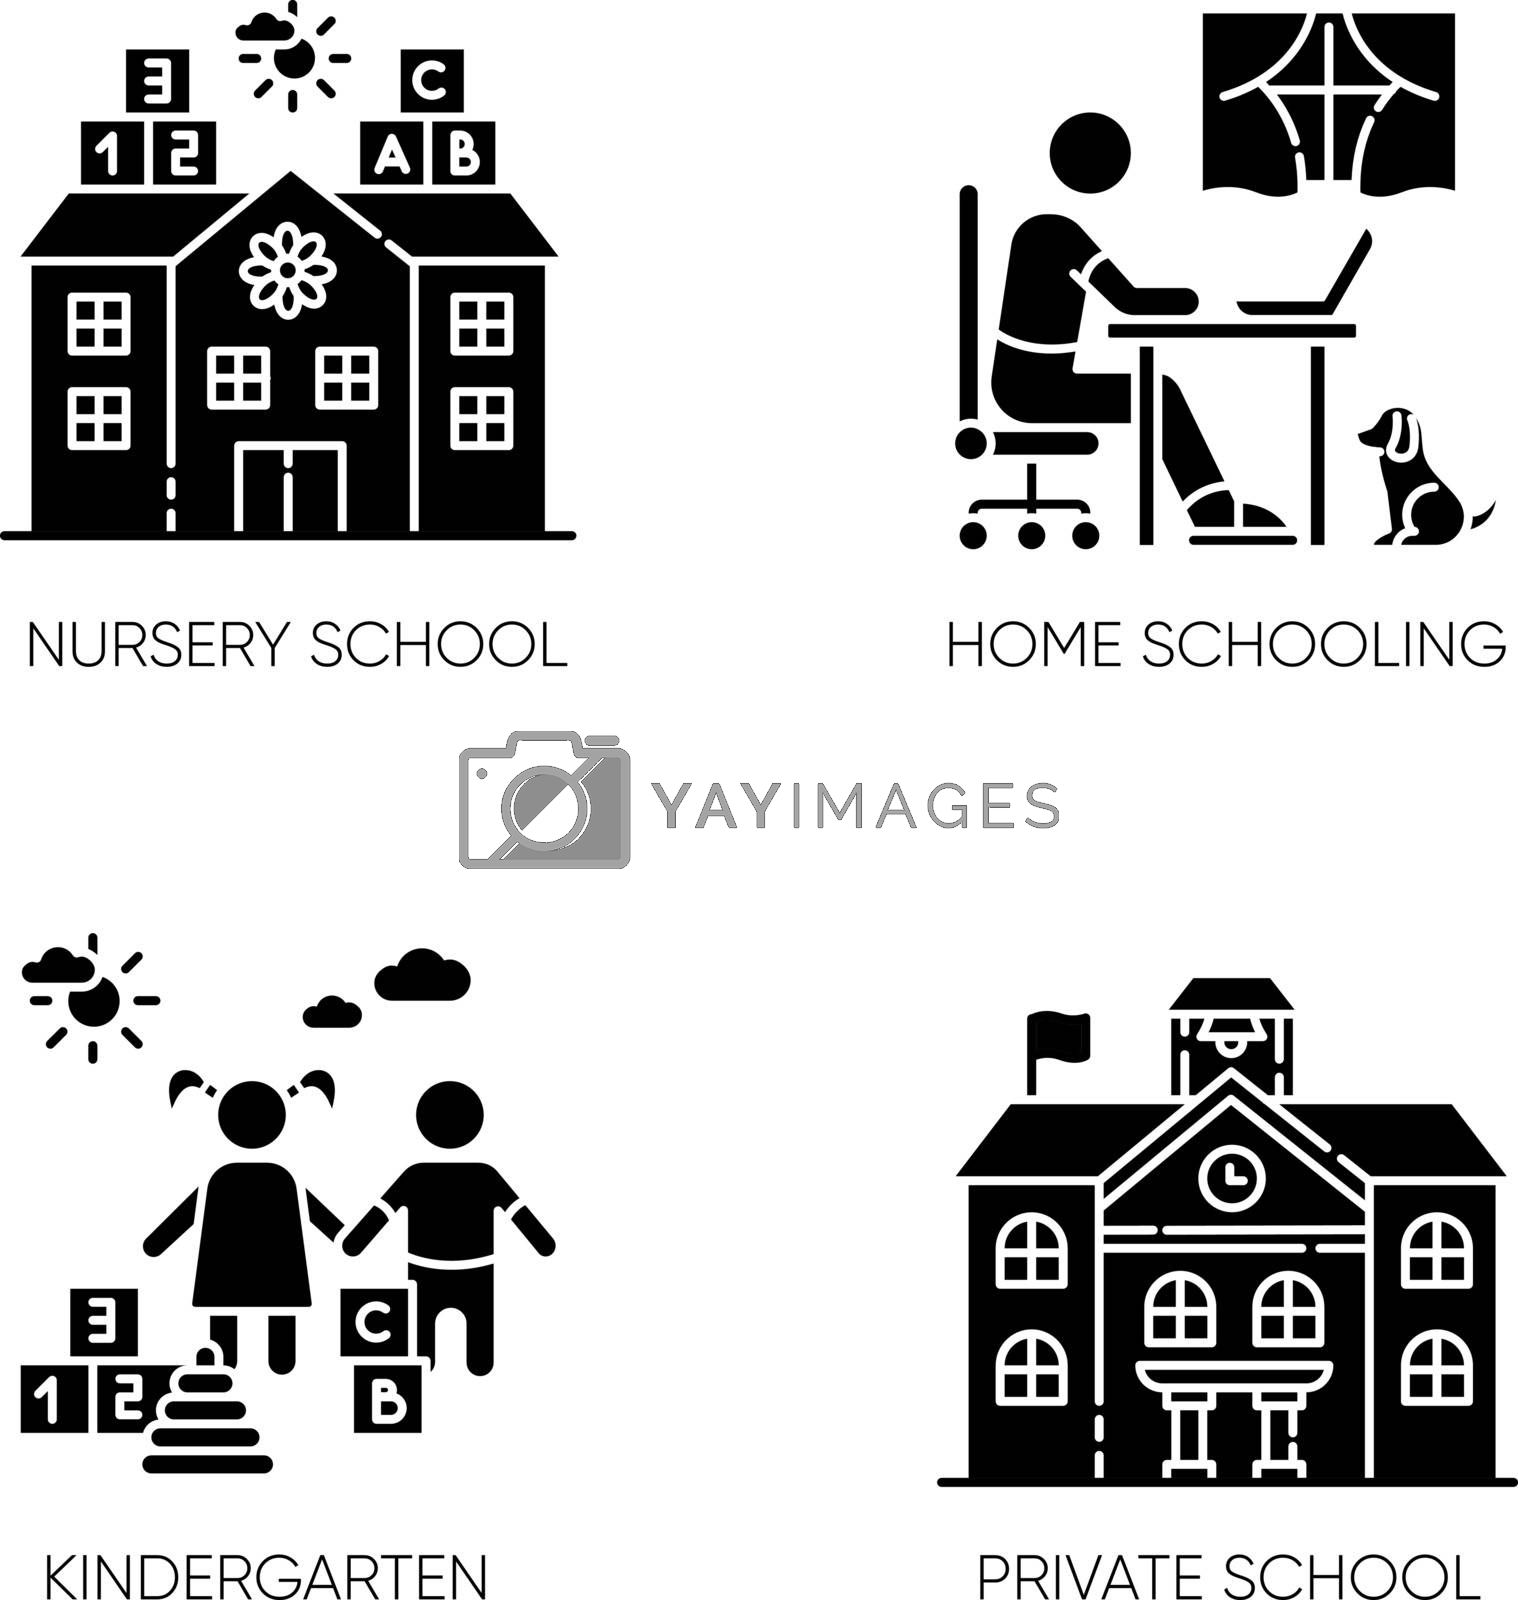 Academic studying black glyph icons set on white space. Nursery school, kindergarten and home schooling. Private elementary and secondary education silhouette symbols. Vector isolated illustrations